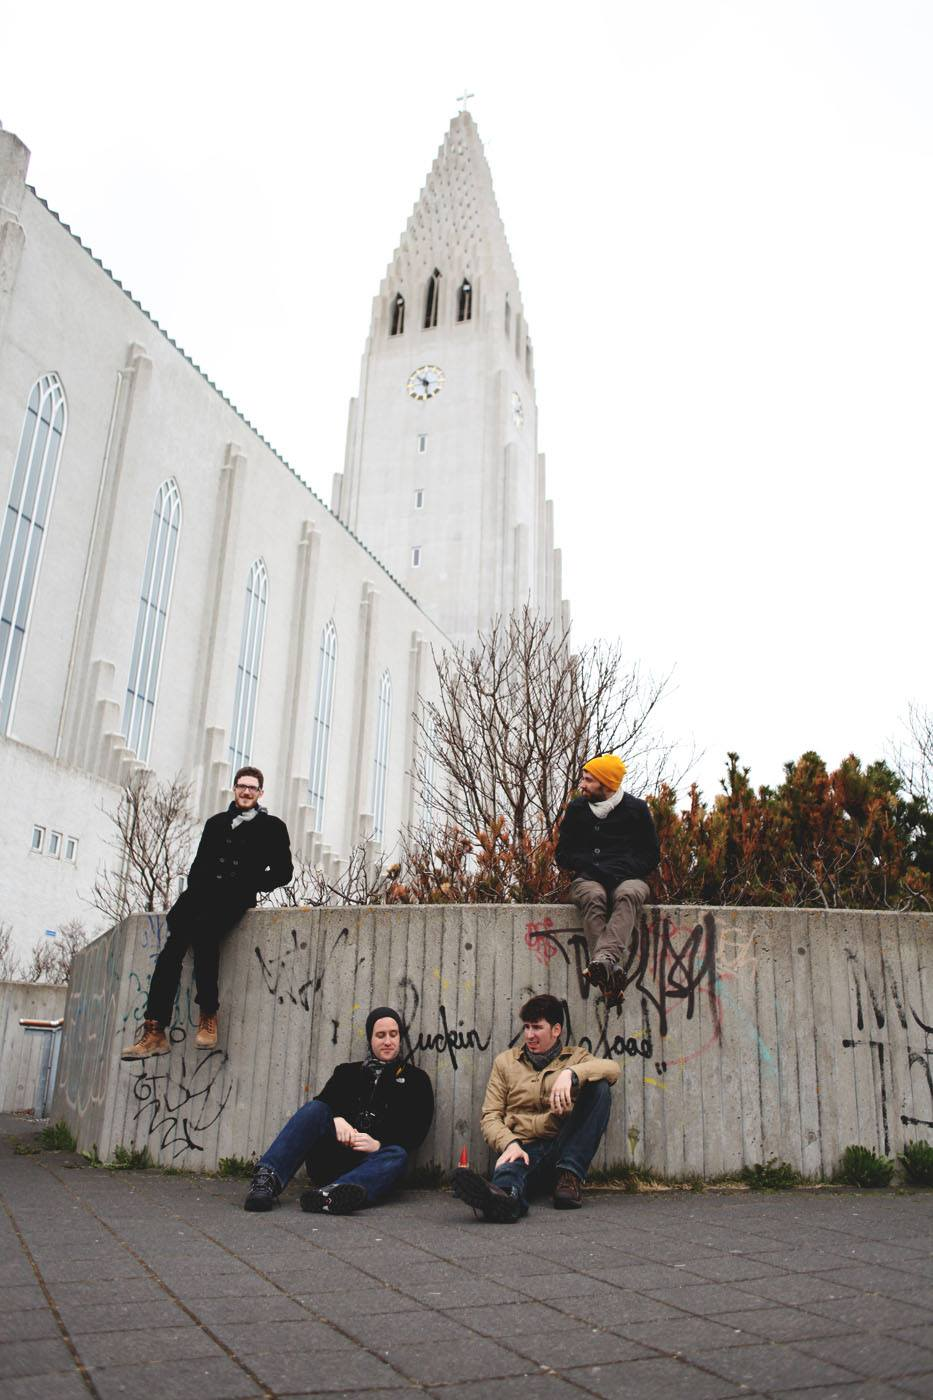 Lounging outside of Hallgrímskirkja with some local graffiti.